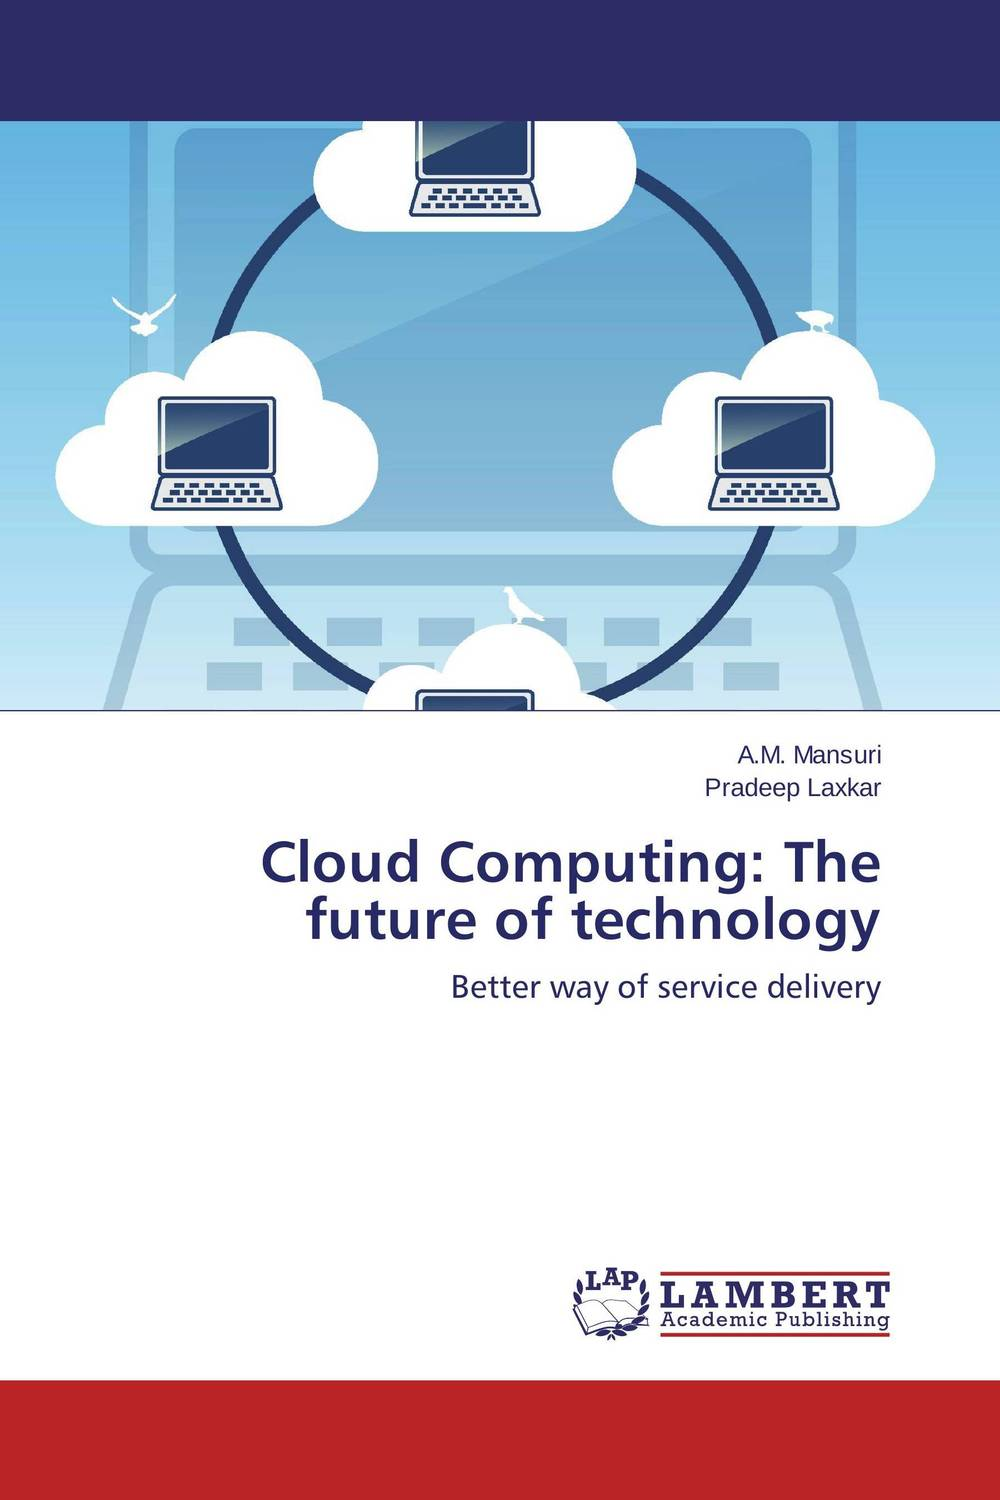 Cloud Computing: The future of technology regression analysis of cloud computing adoption for u s hospitals